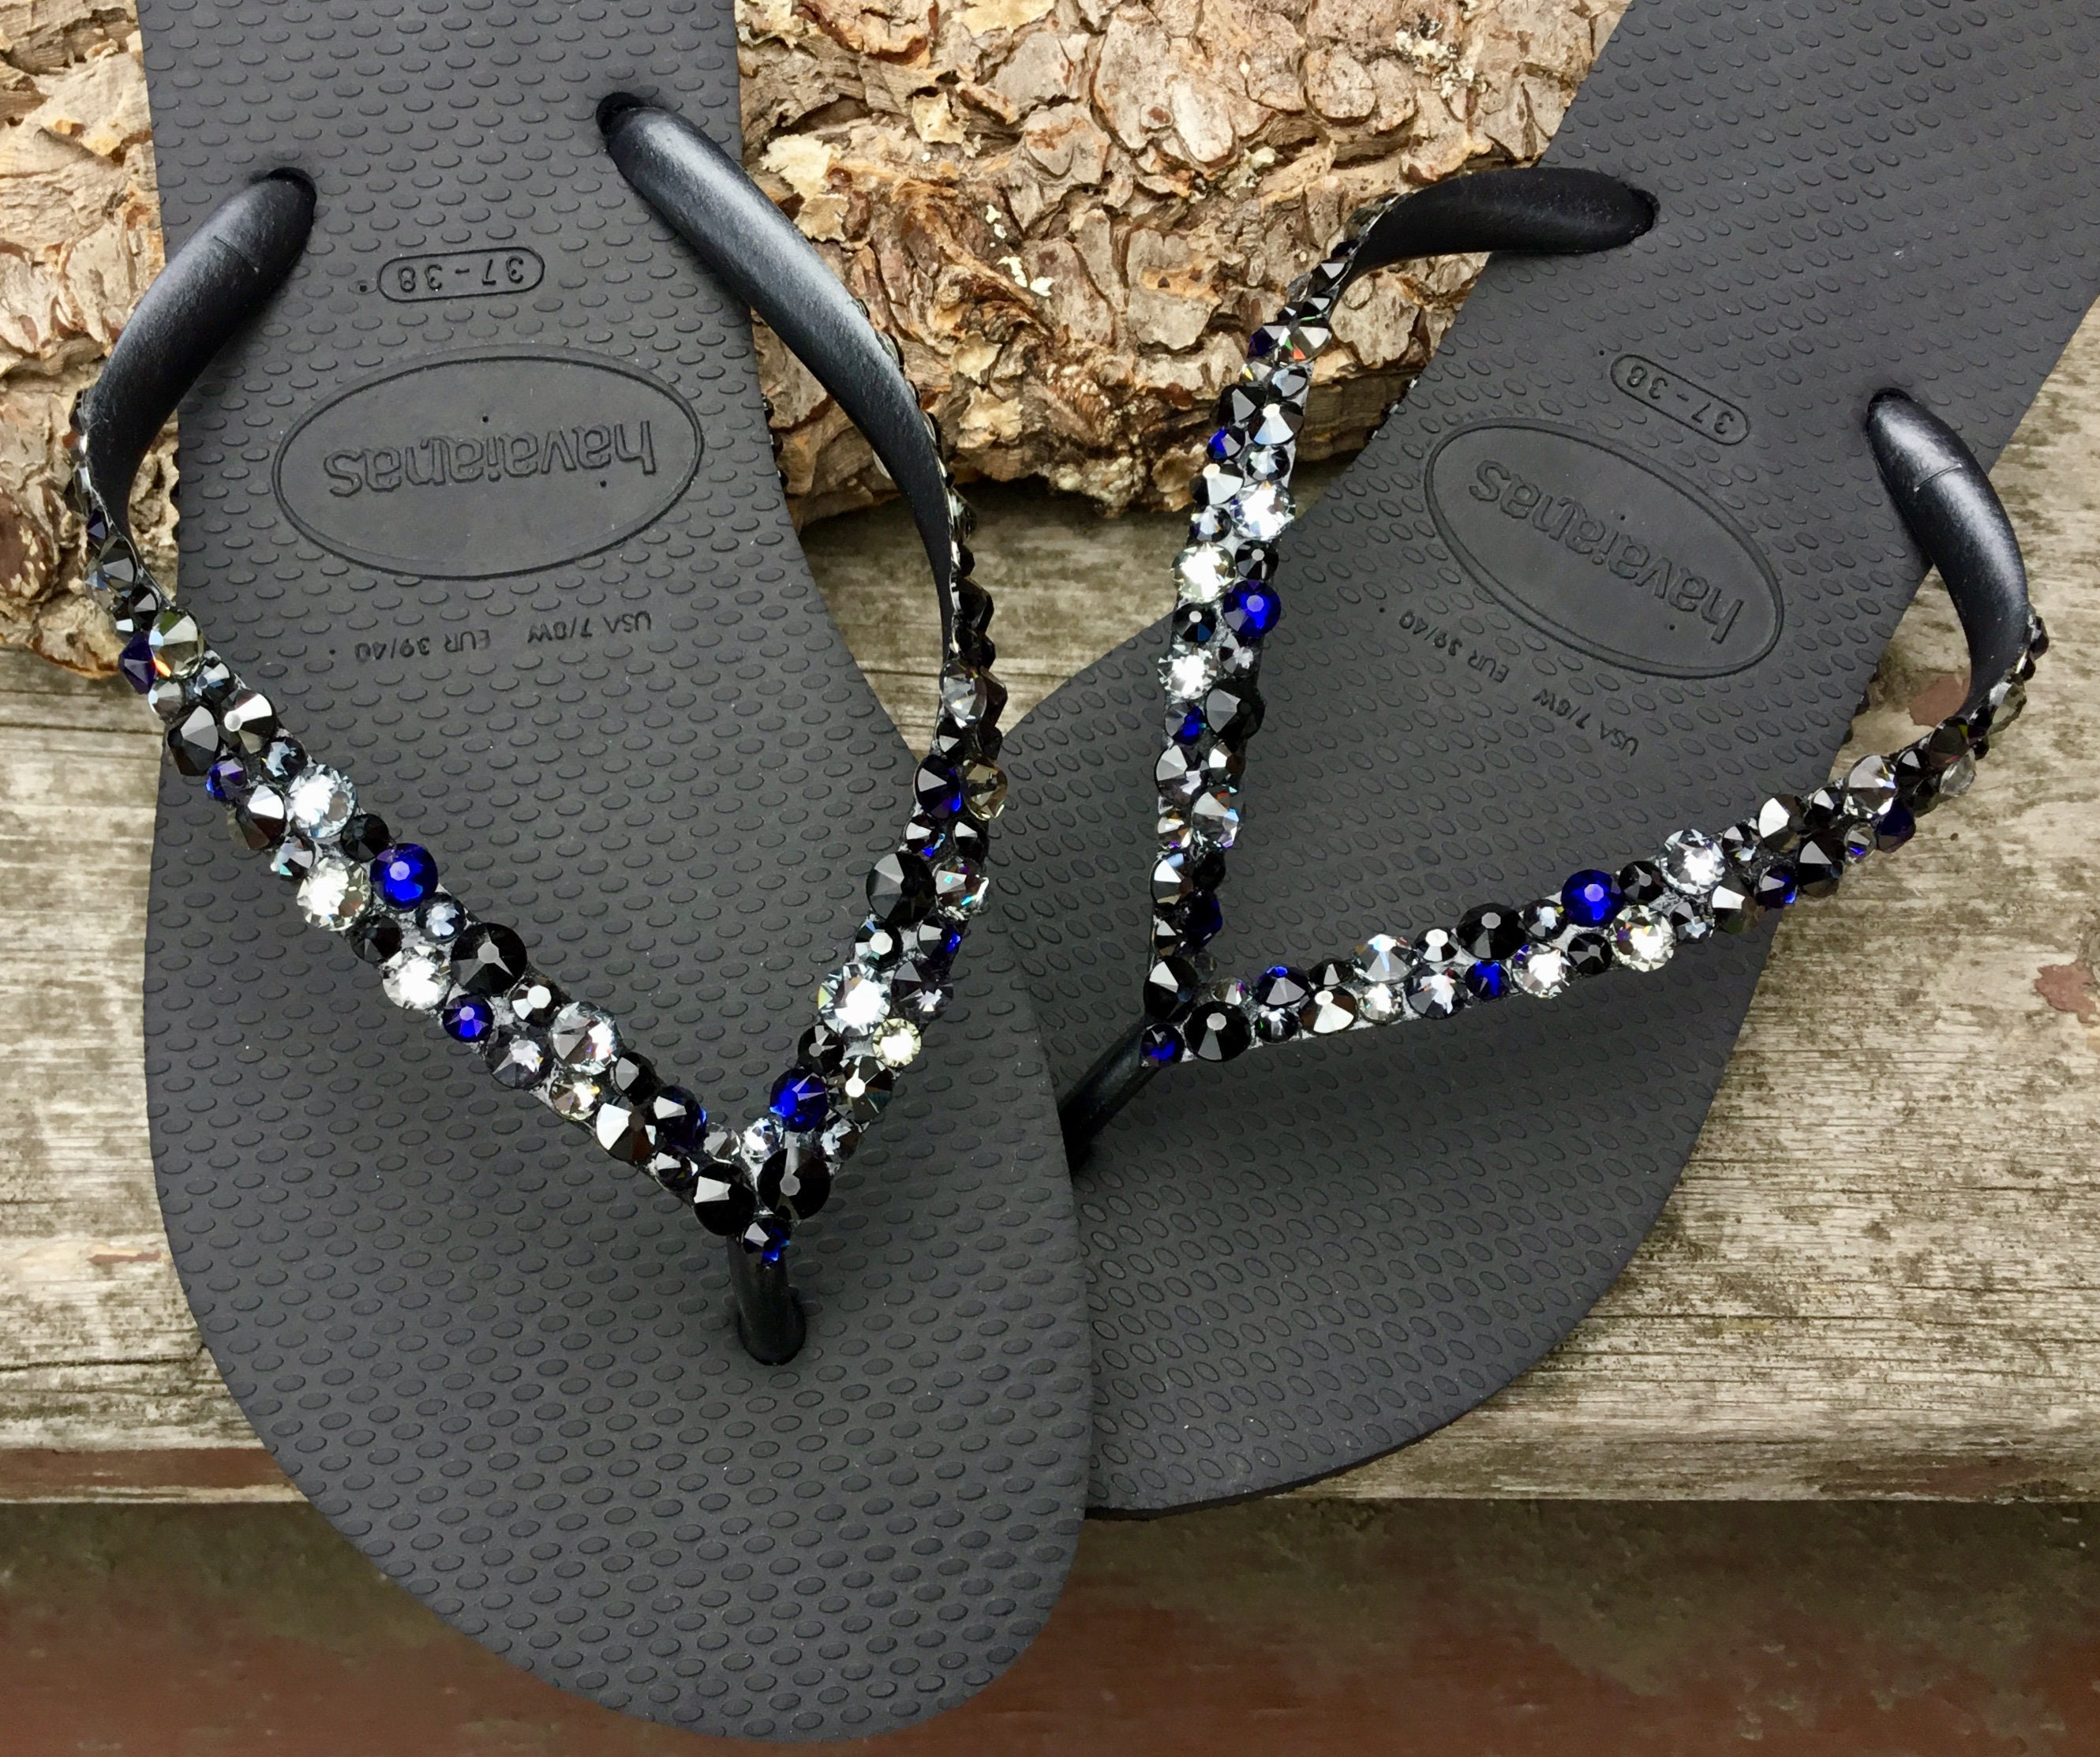 230b958ec7c09 Crystal Flip Flops Beach Glass Black Silver Blue Havaianas Slim w ...